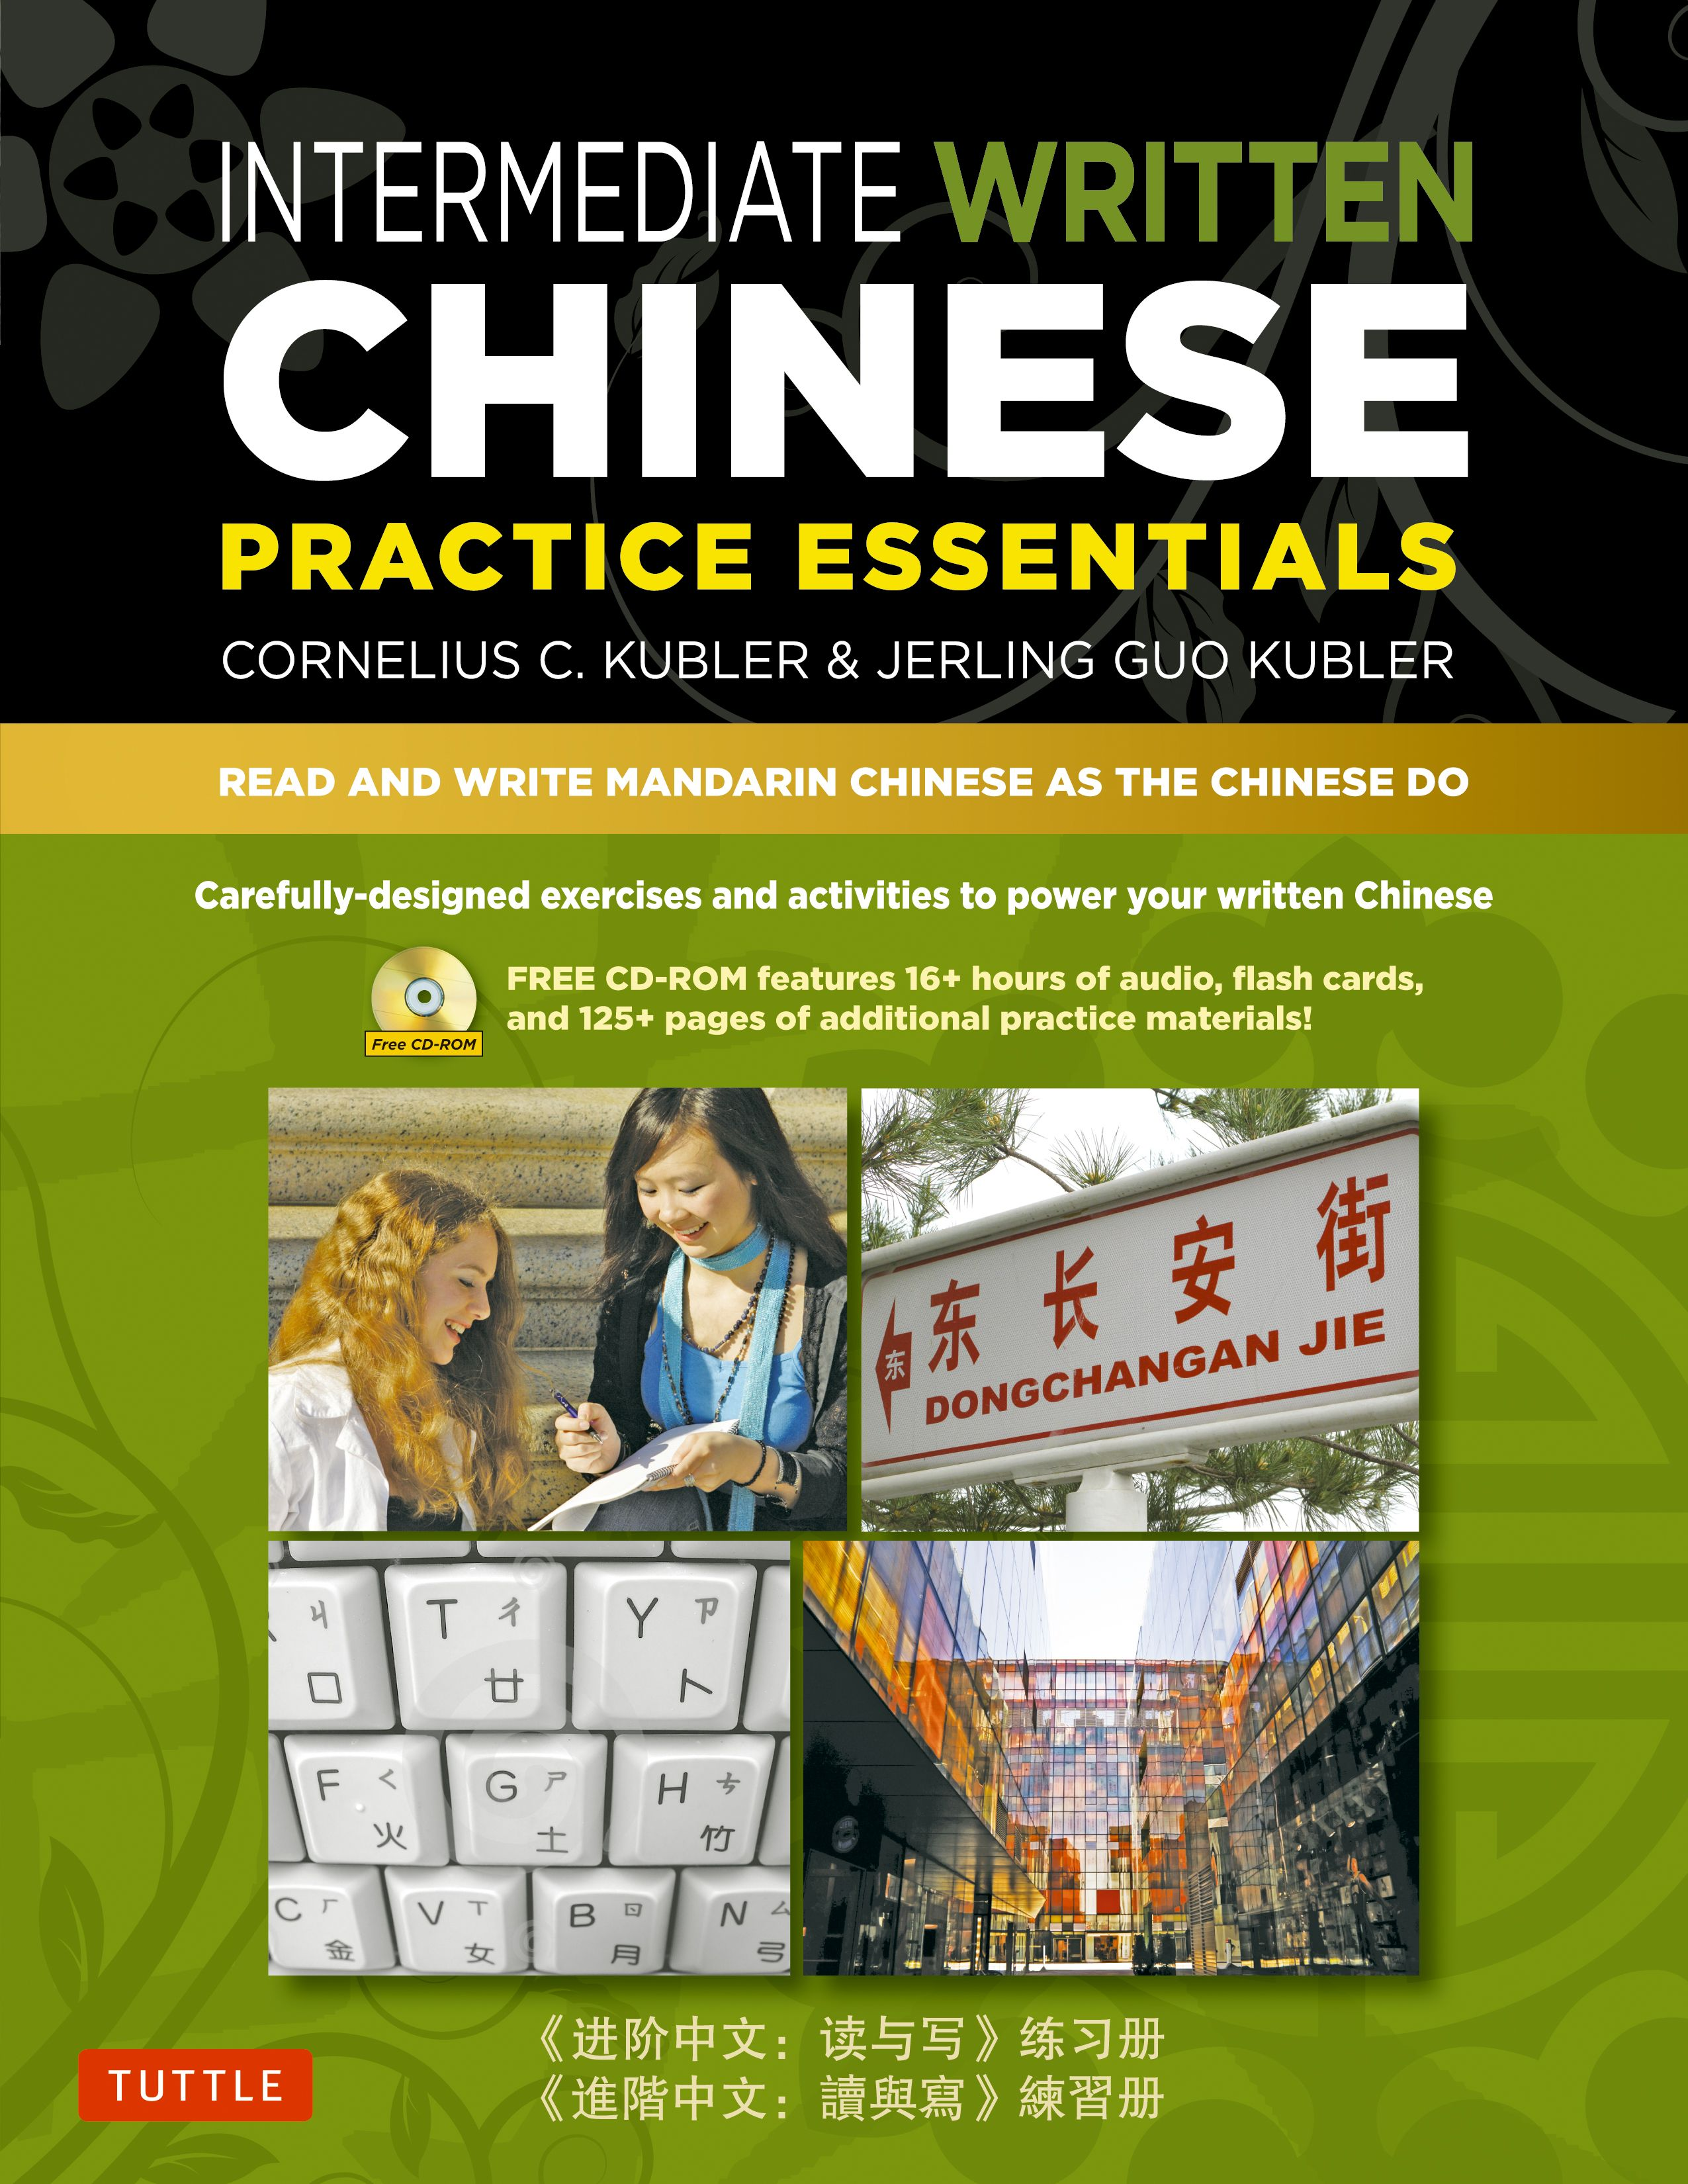 Learning To Read And Write Chinese Requires Lots Of